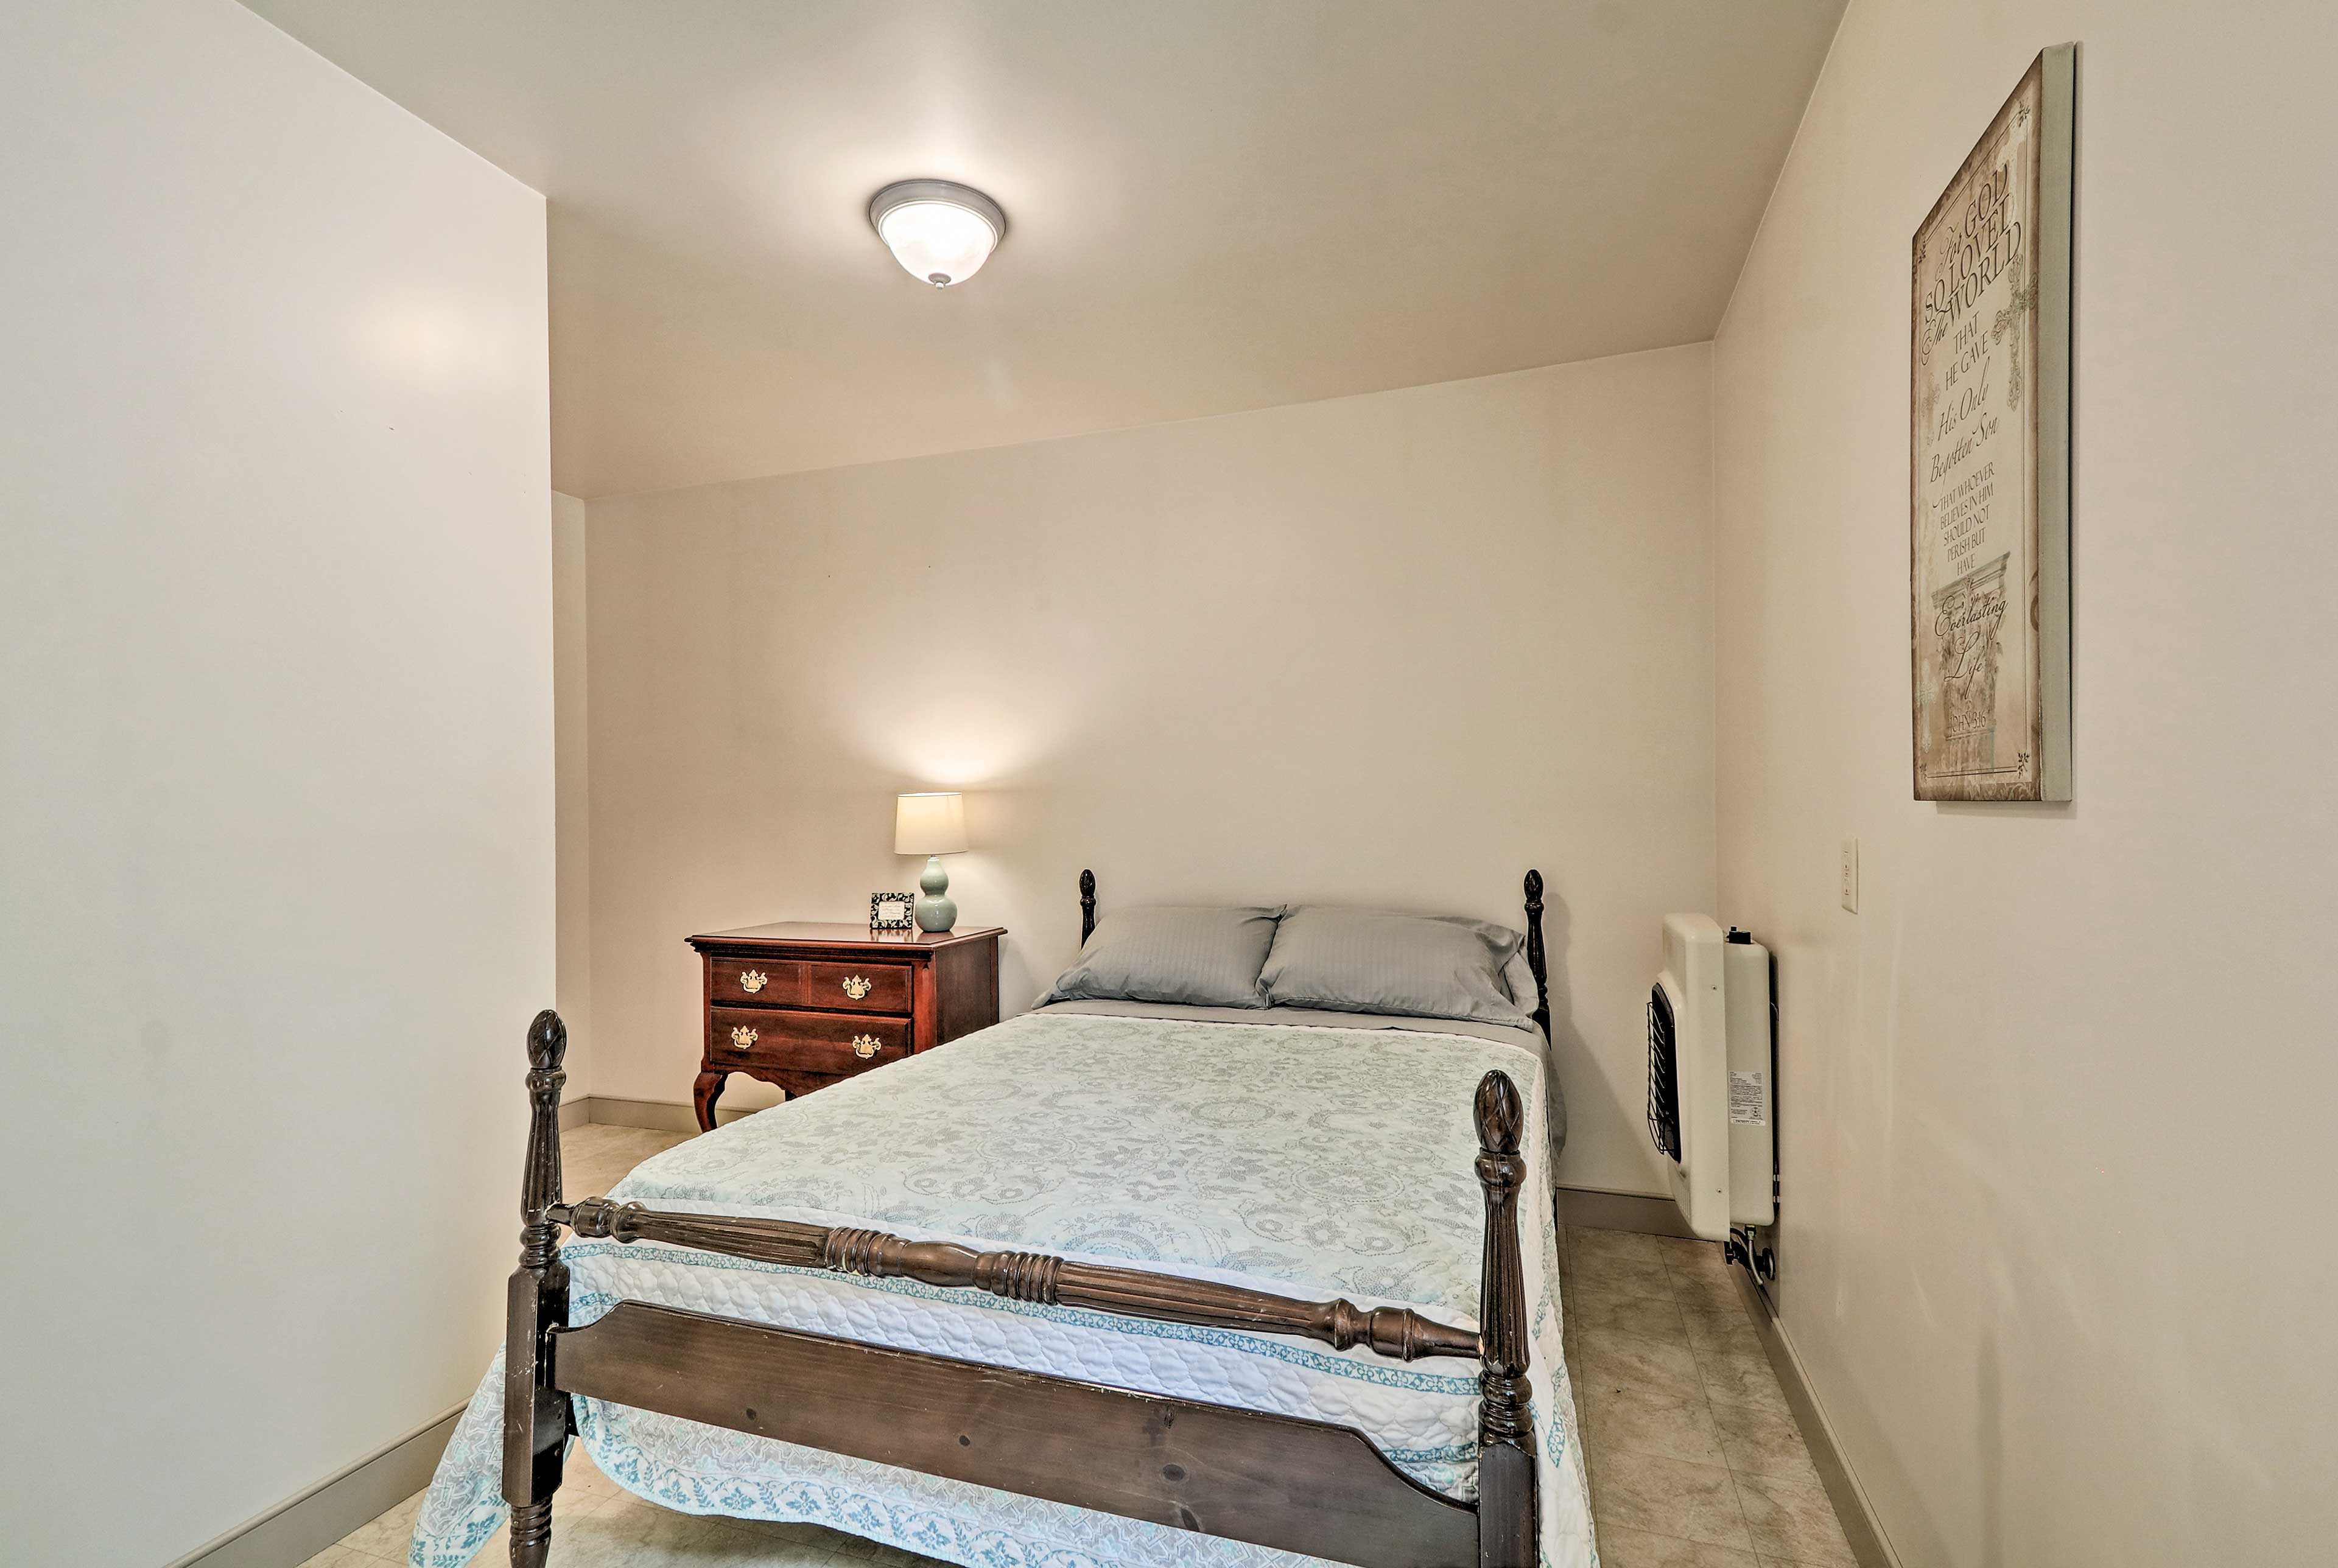 The 3rd bedroom features a full bed.